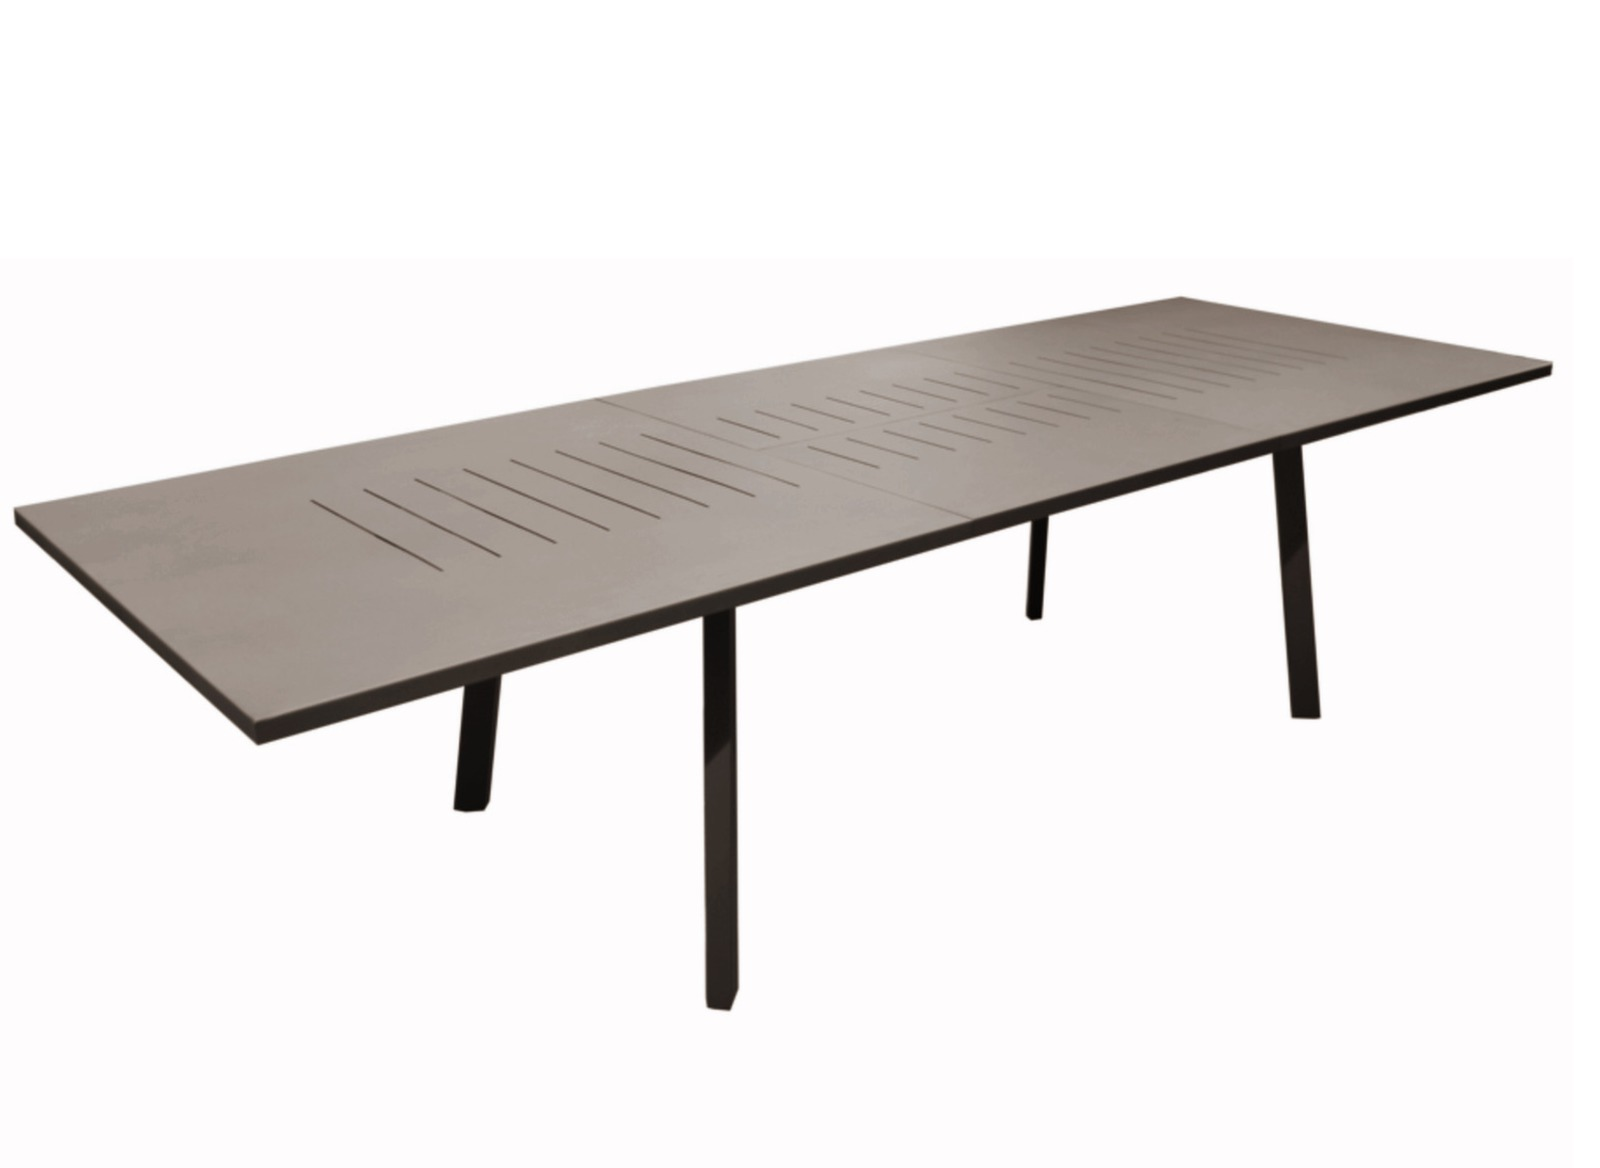 table extensible barcelona 120 170 cm mobilier de jardin pour le repas promotions bons. Black Bedroom Furniture Sets. Home Design Ideas